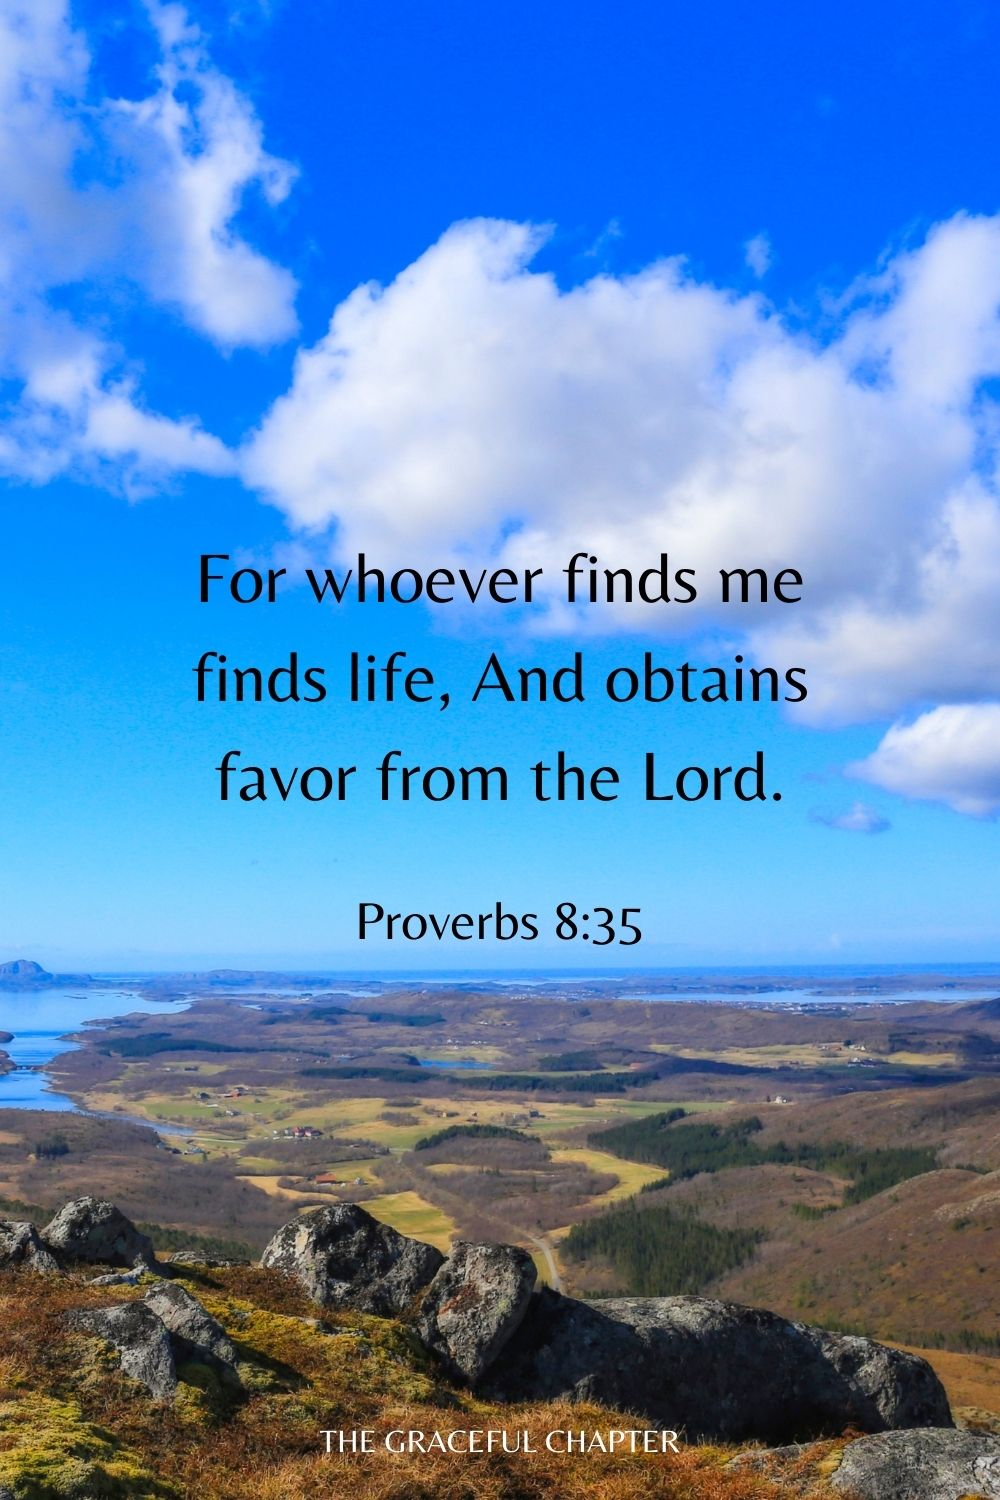 For whoever finds me finds life, And obtains favor from the Lord. Proverbs 8:35